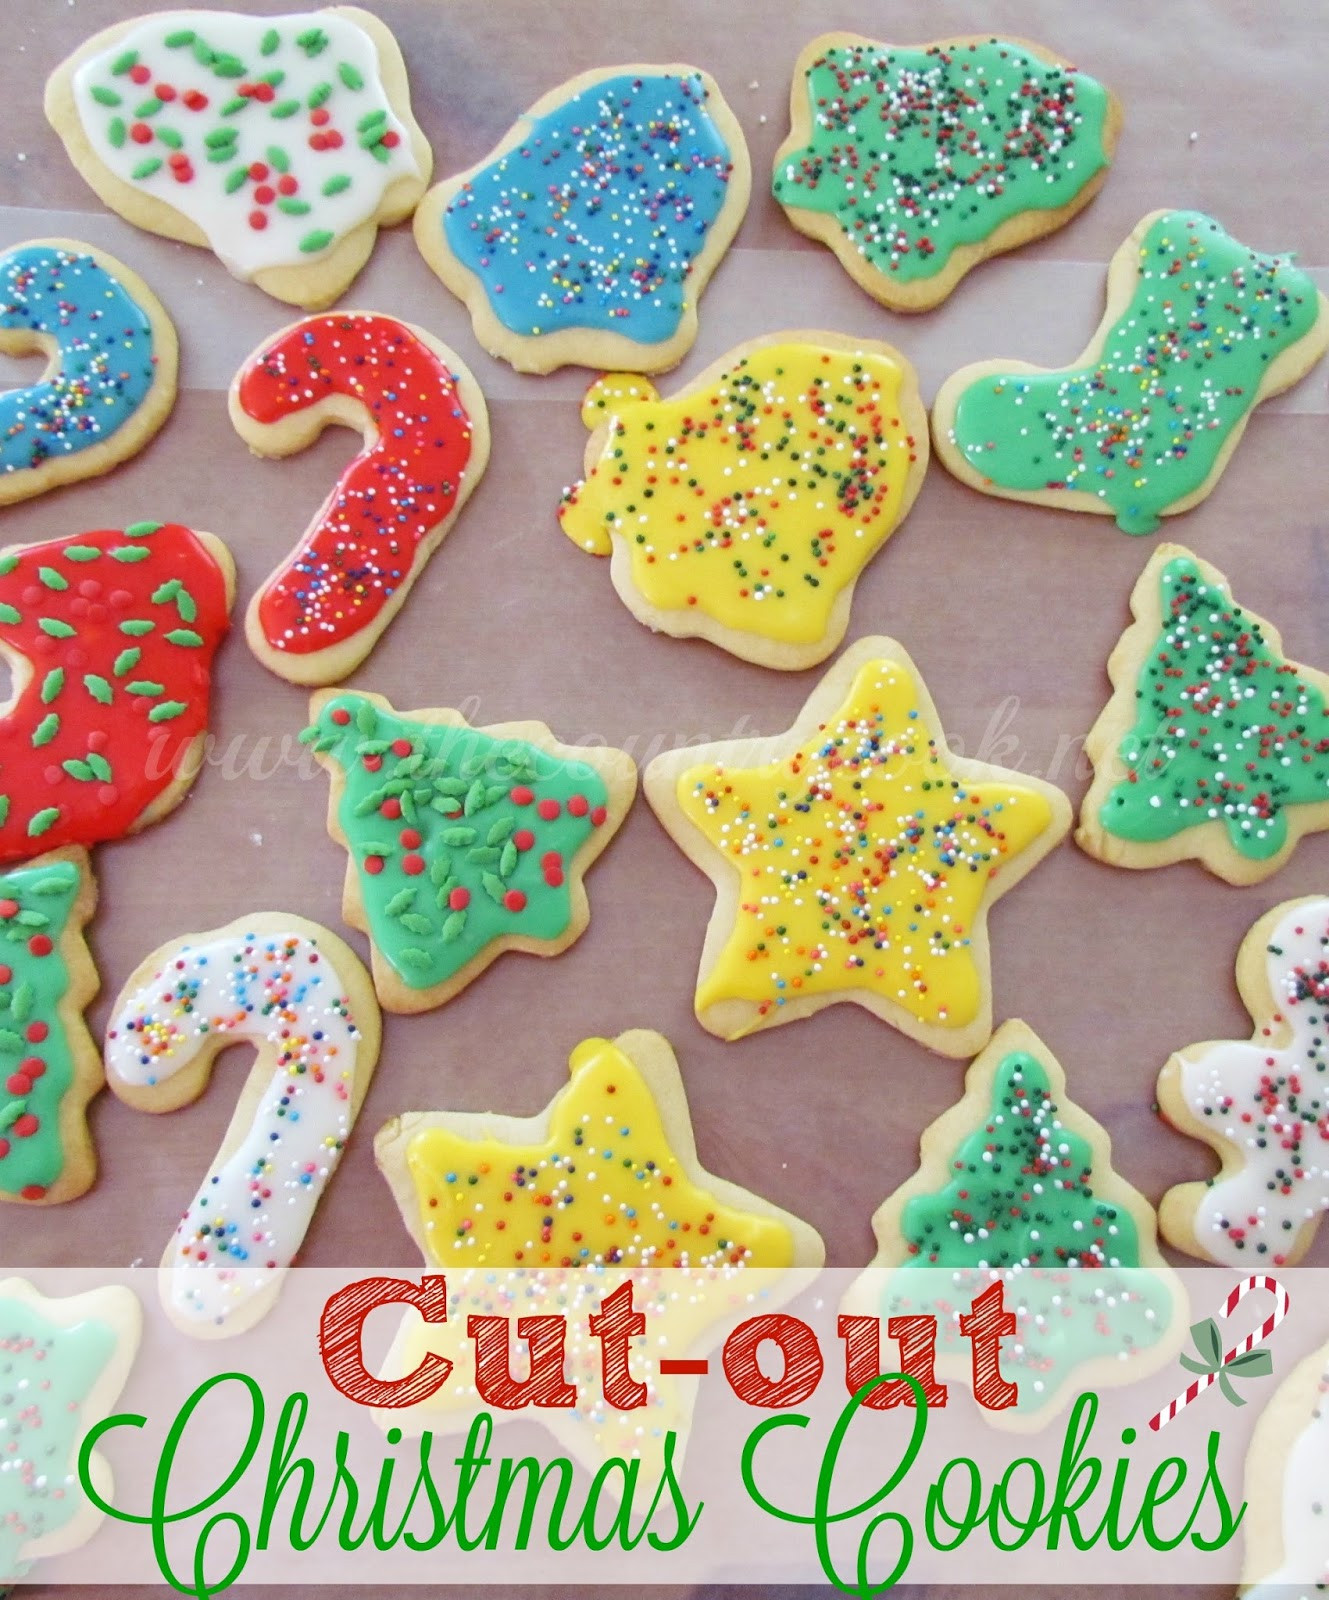 Christmas Cut Out Sugar Cookies  Cut Out Sugar Cookies The Country Cook